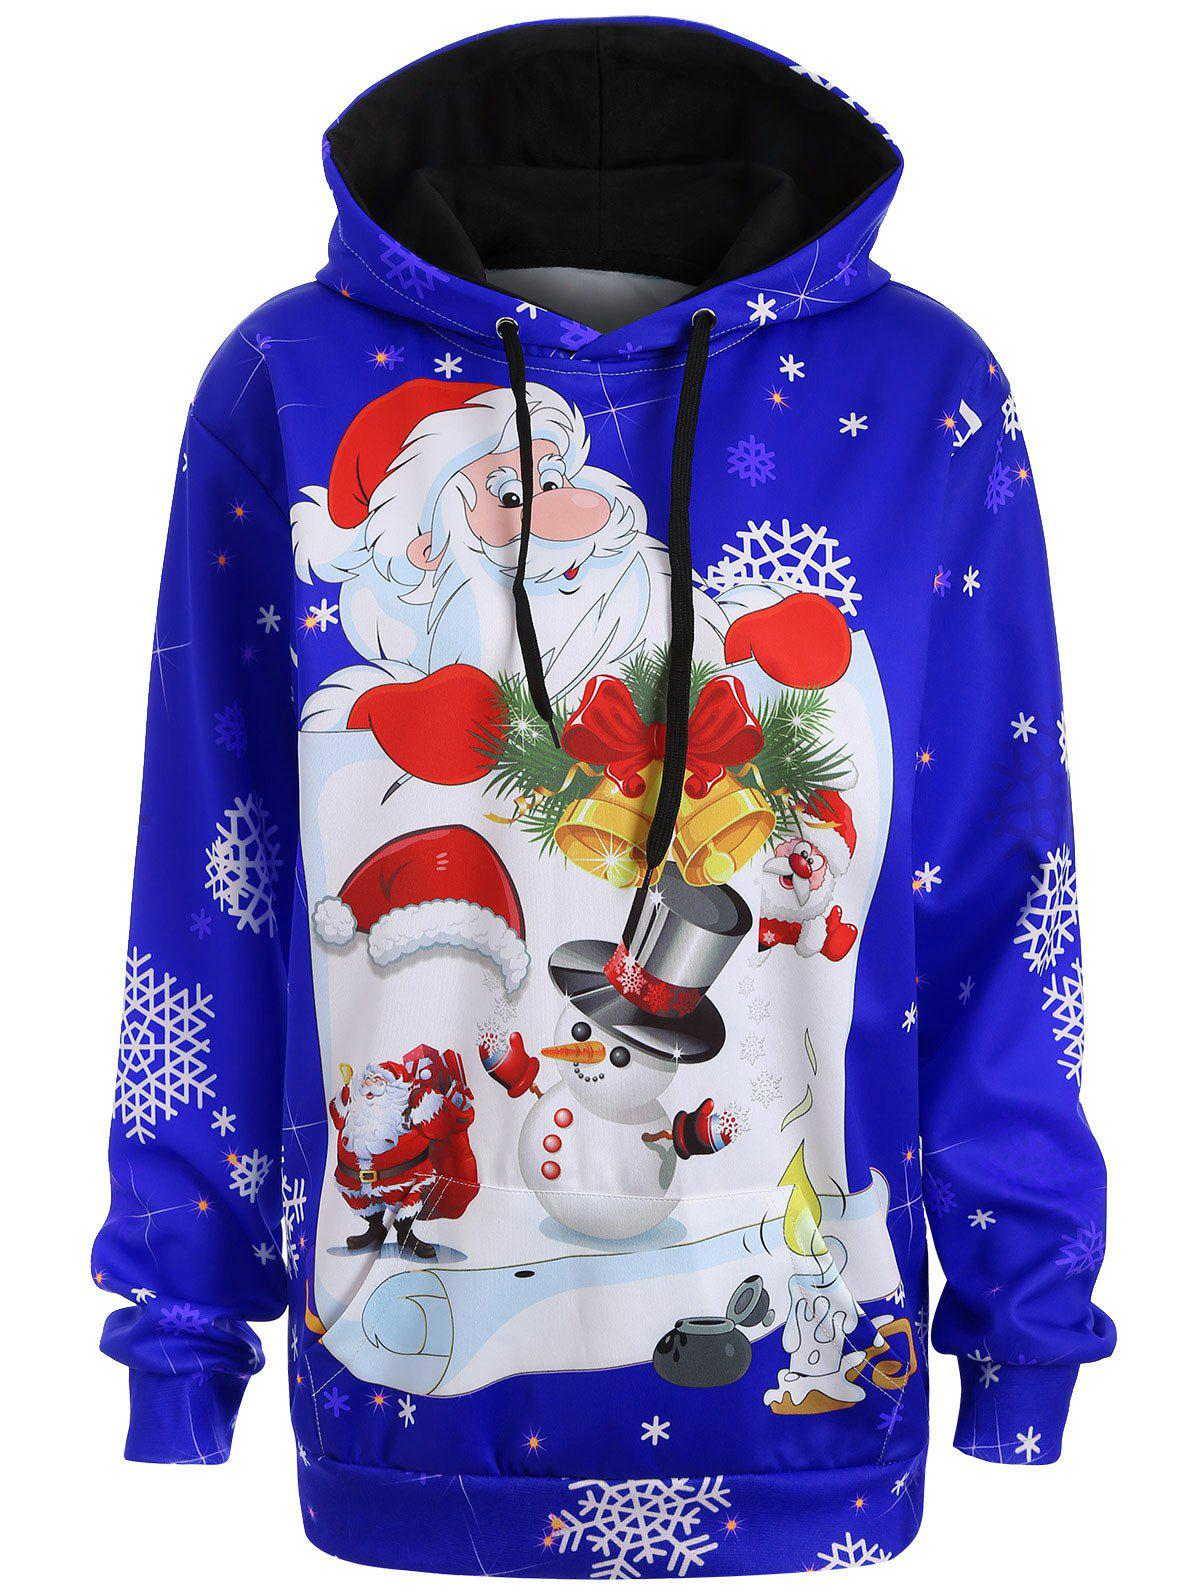 Discount Christmas Plus Size Snowman Kangaroo Pocket Hoodie